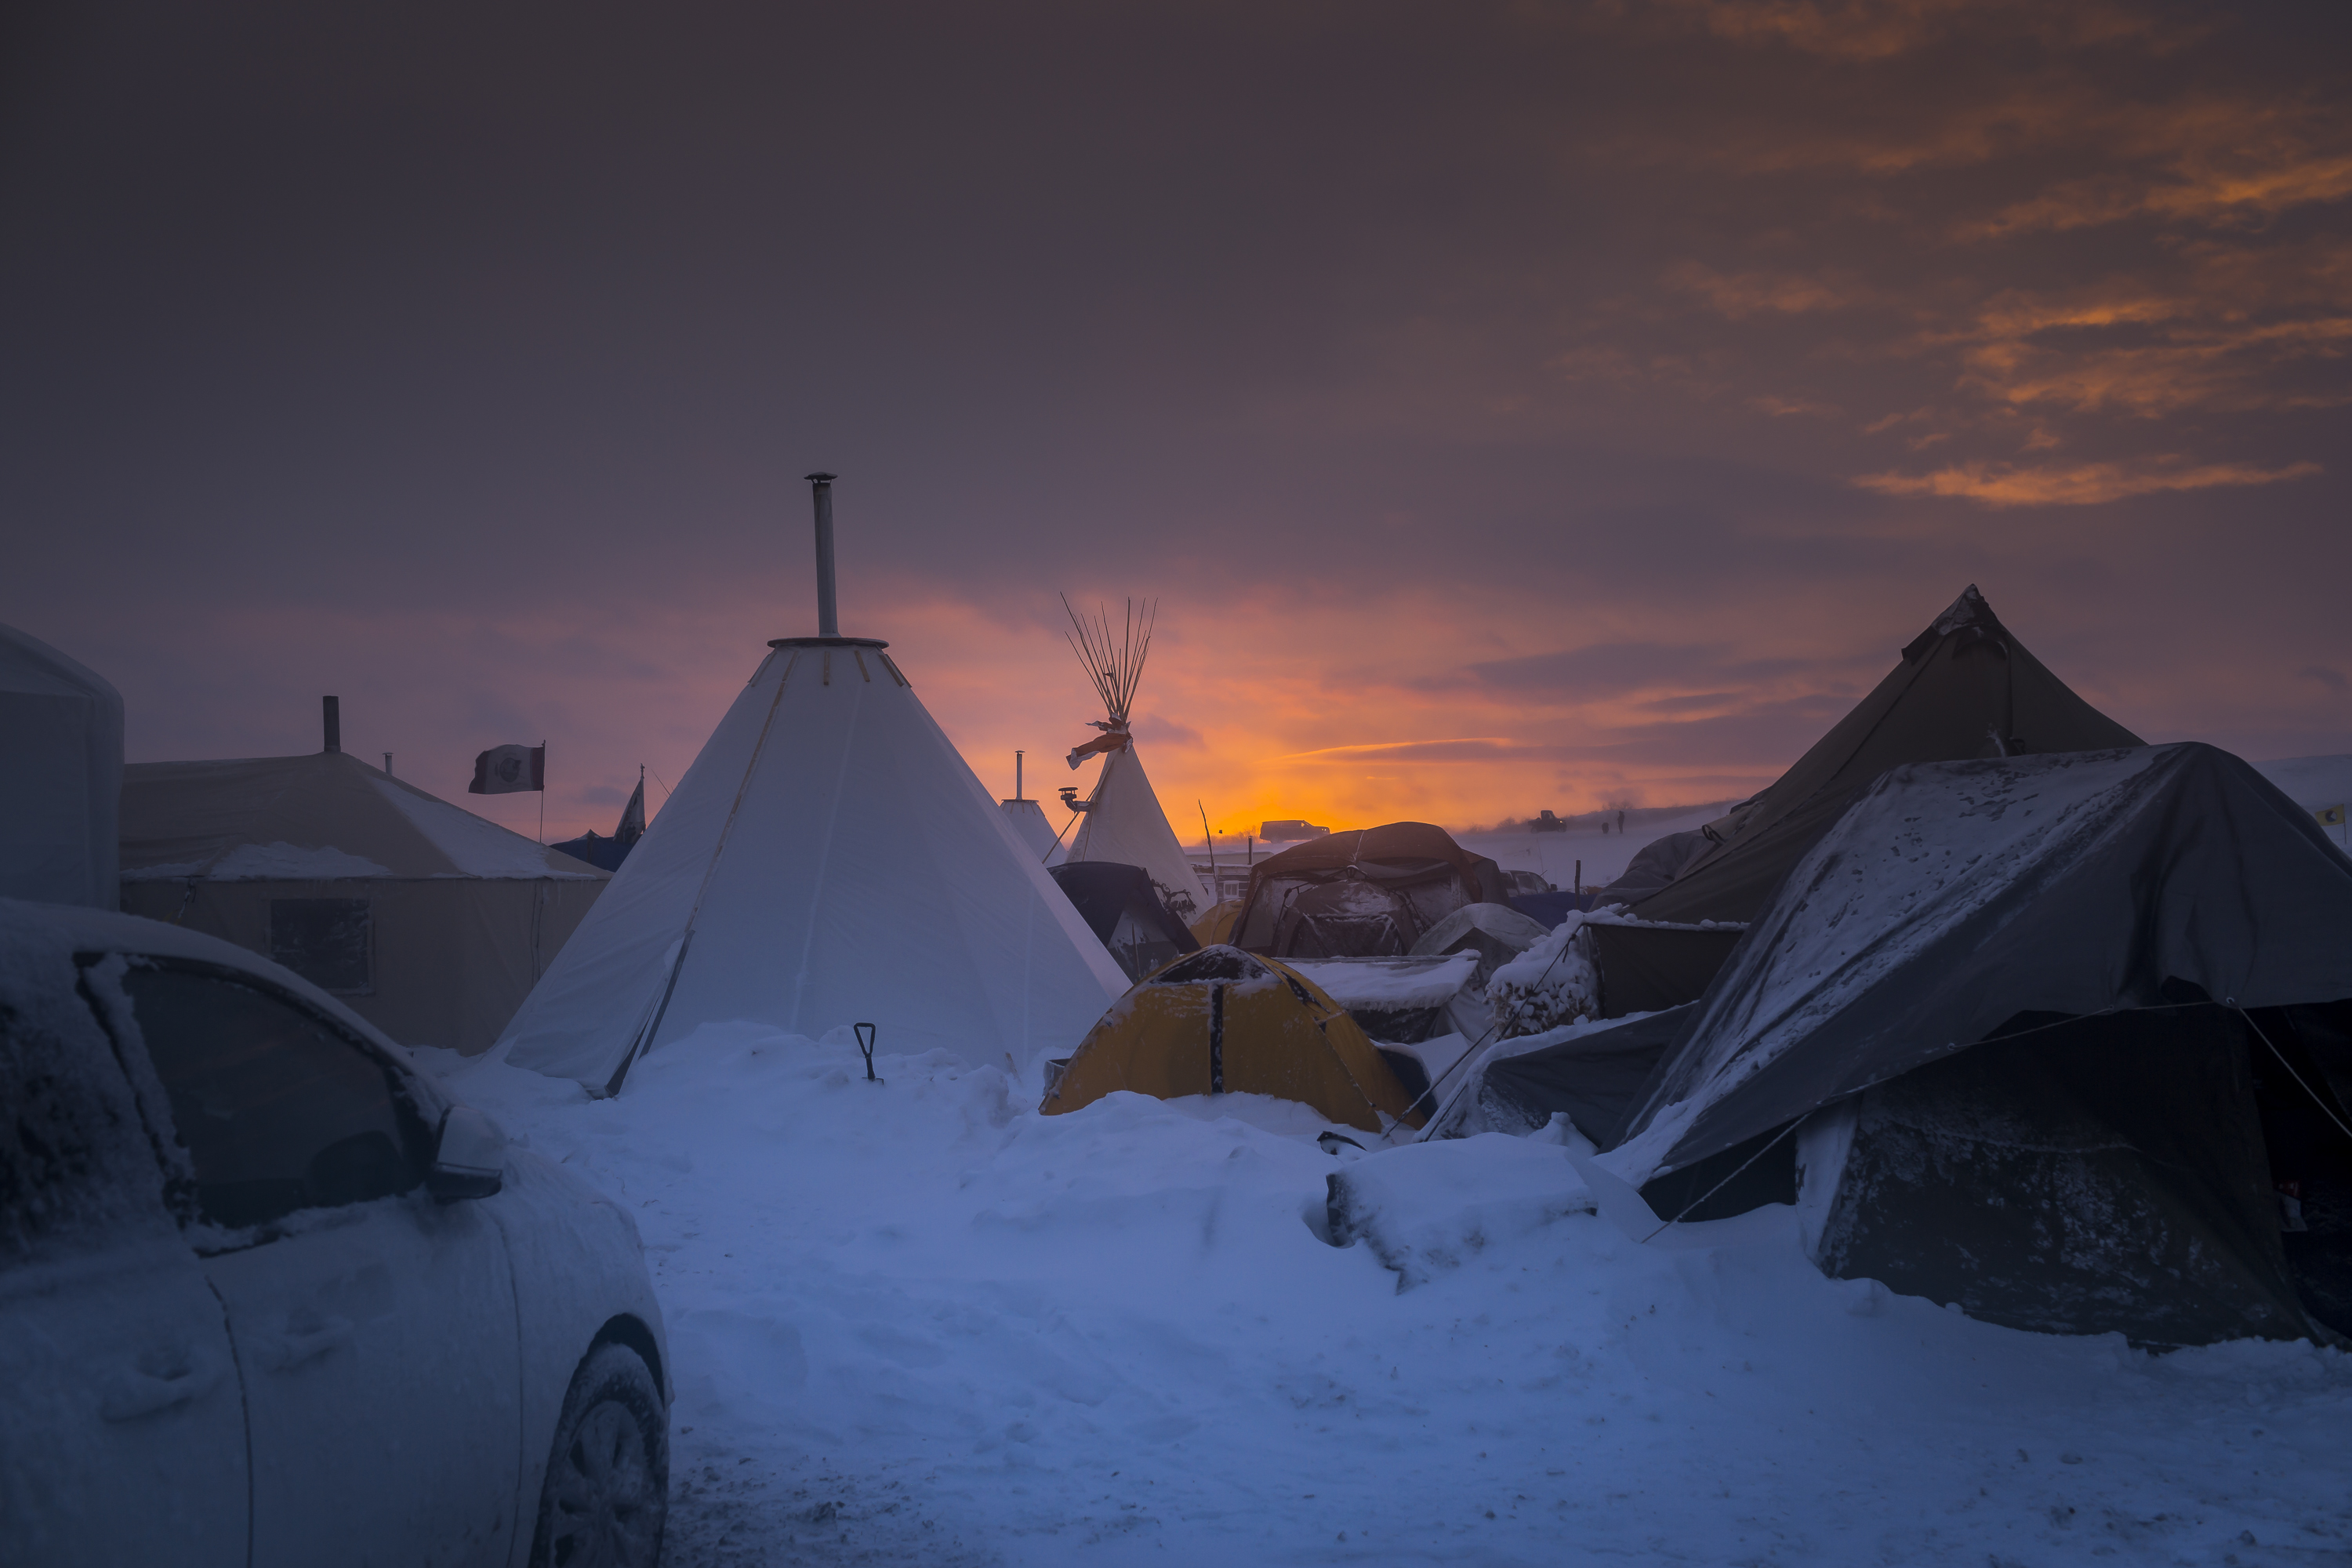 Winter arrives in Standing Rock at the Oceti Sakowin Camp in North Dakota, the day after the Army Corps of Engineers denied the easement needed to build the pipeline.